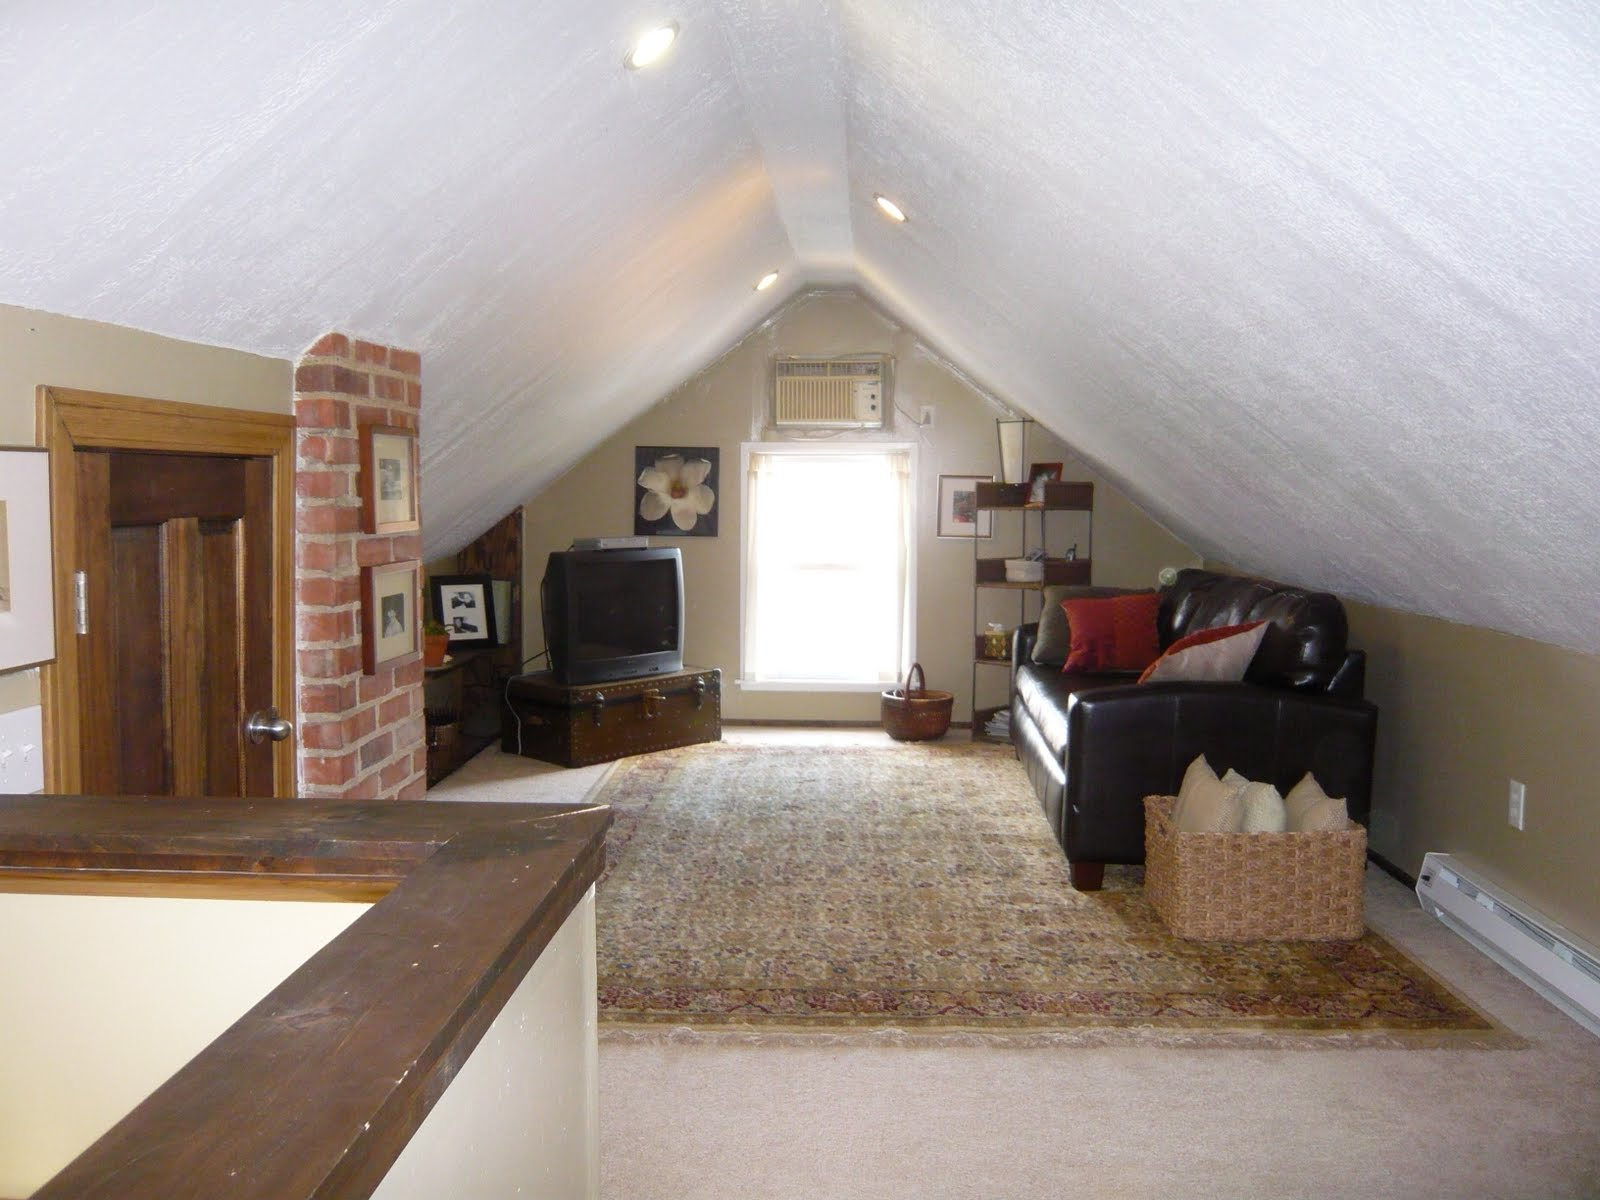 Houses With Finished Attics Attic Ideas